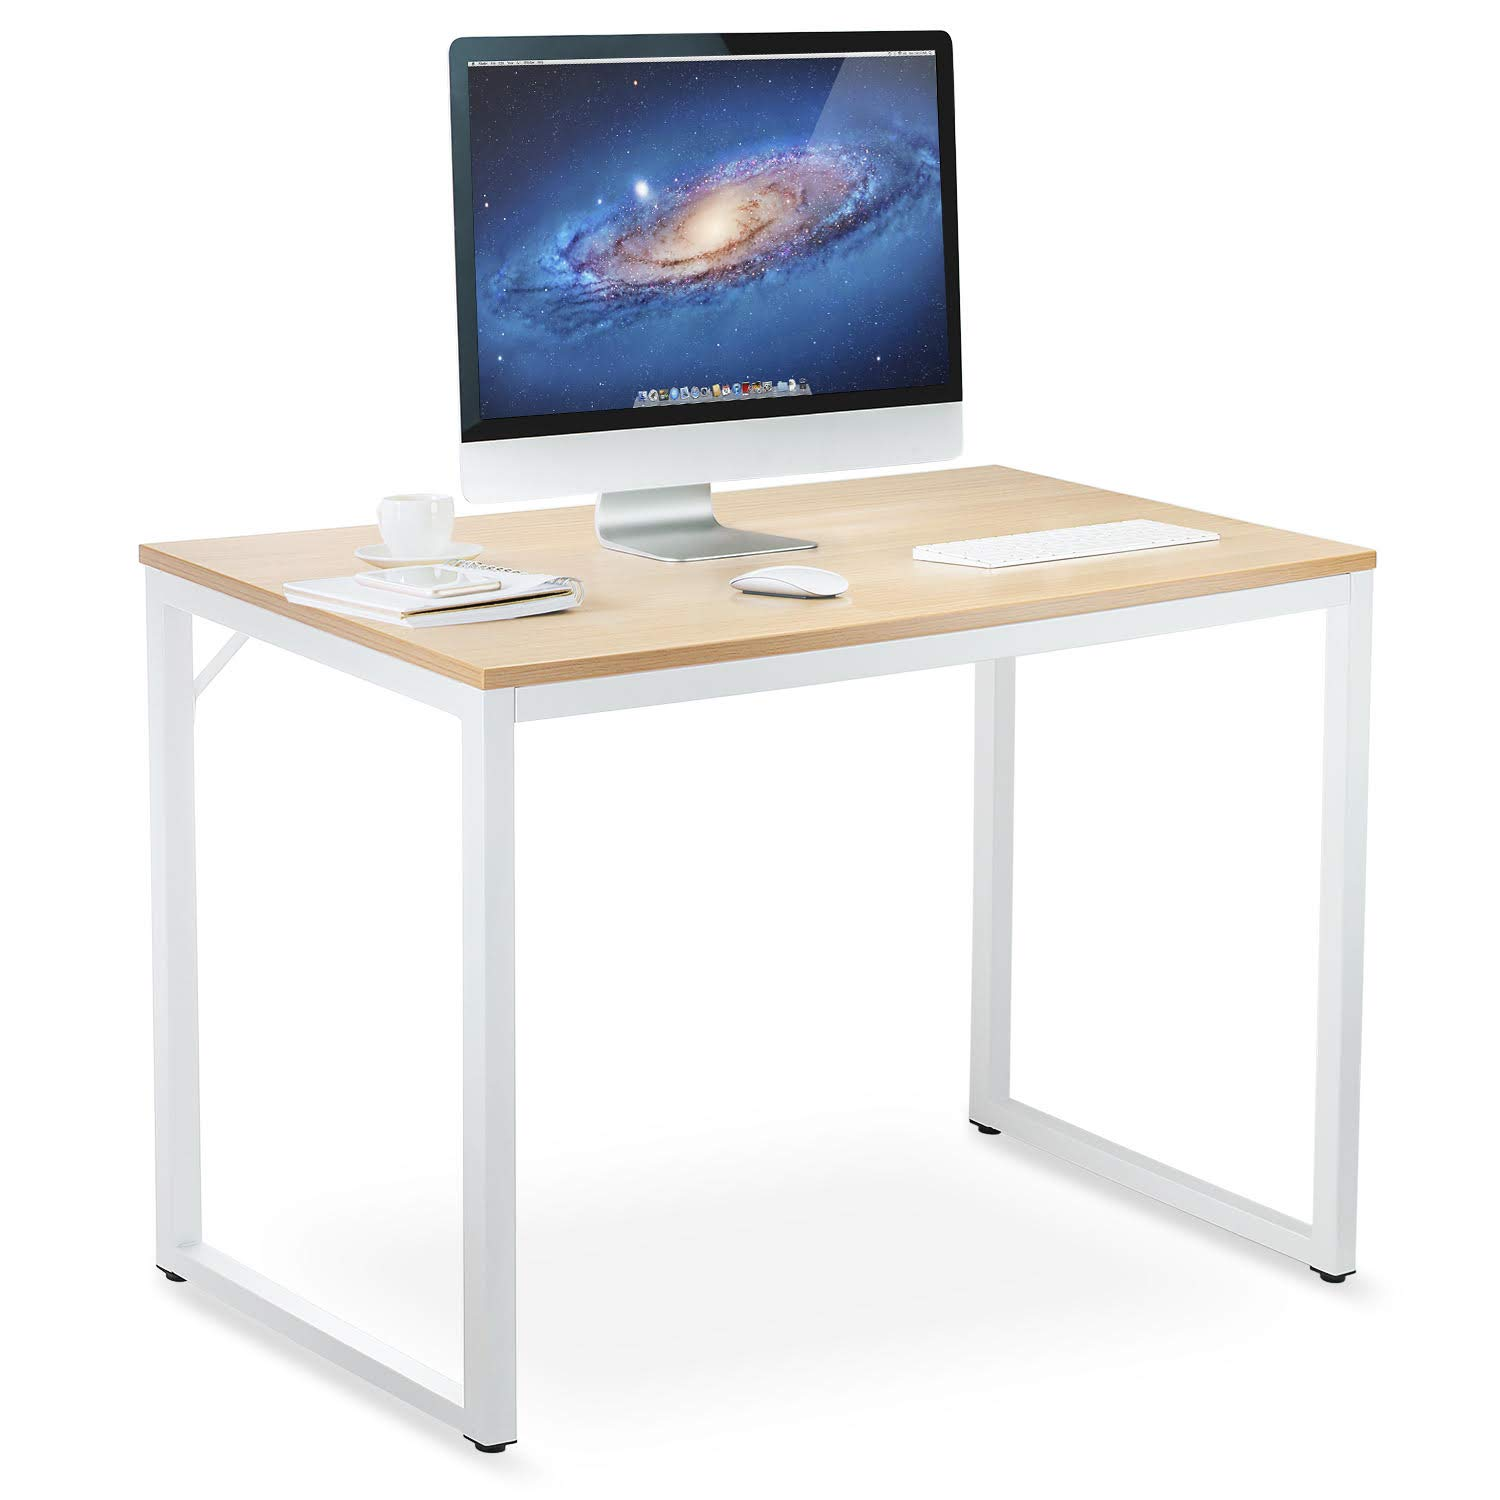 DELLA CASA Compact Modern Home Office Desk - for Computer, Laptop, Tablet, Writing, Student. Beautiful Red Oak Wood with White Metal Legs. 39 x 19 x 29 Inches. Stylish Space Saving Minimal Design by Della Casa